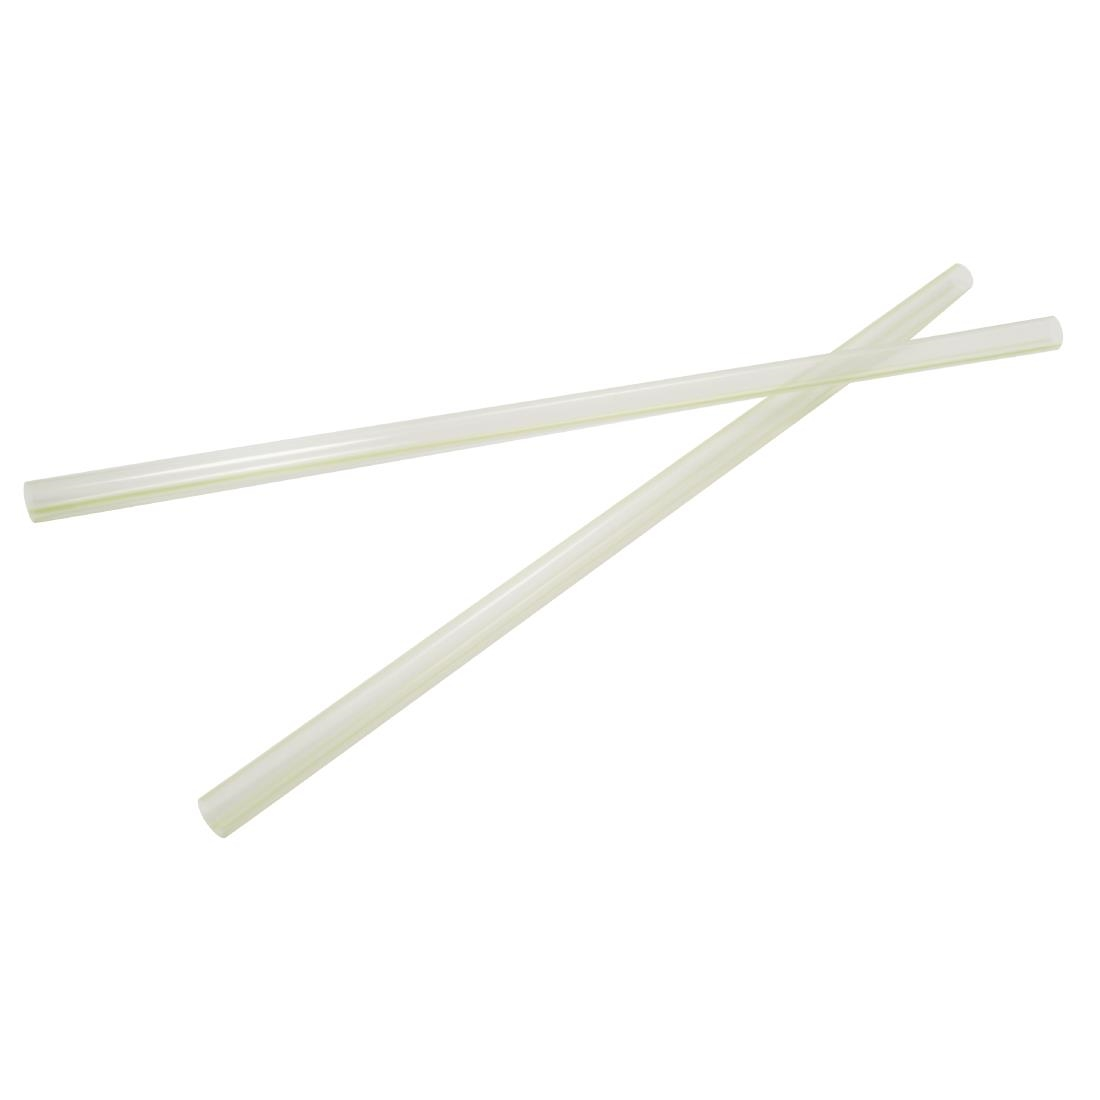 Vegware Compostable PLA Jumbo Straws Green Stripes Pack of 4800